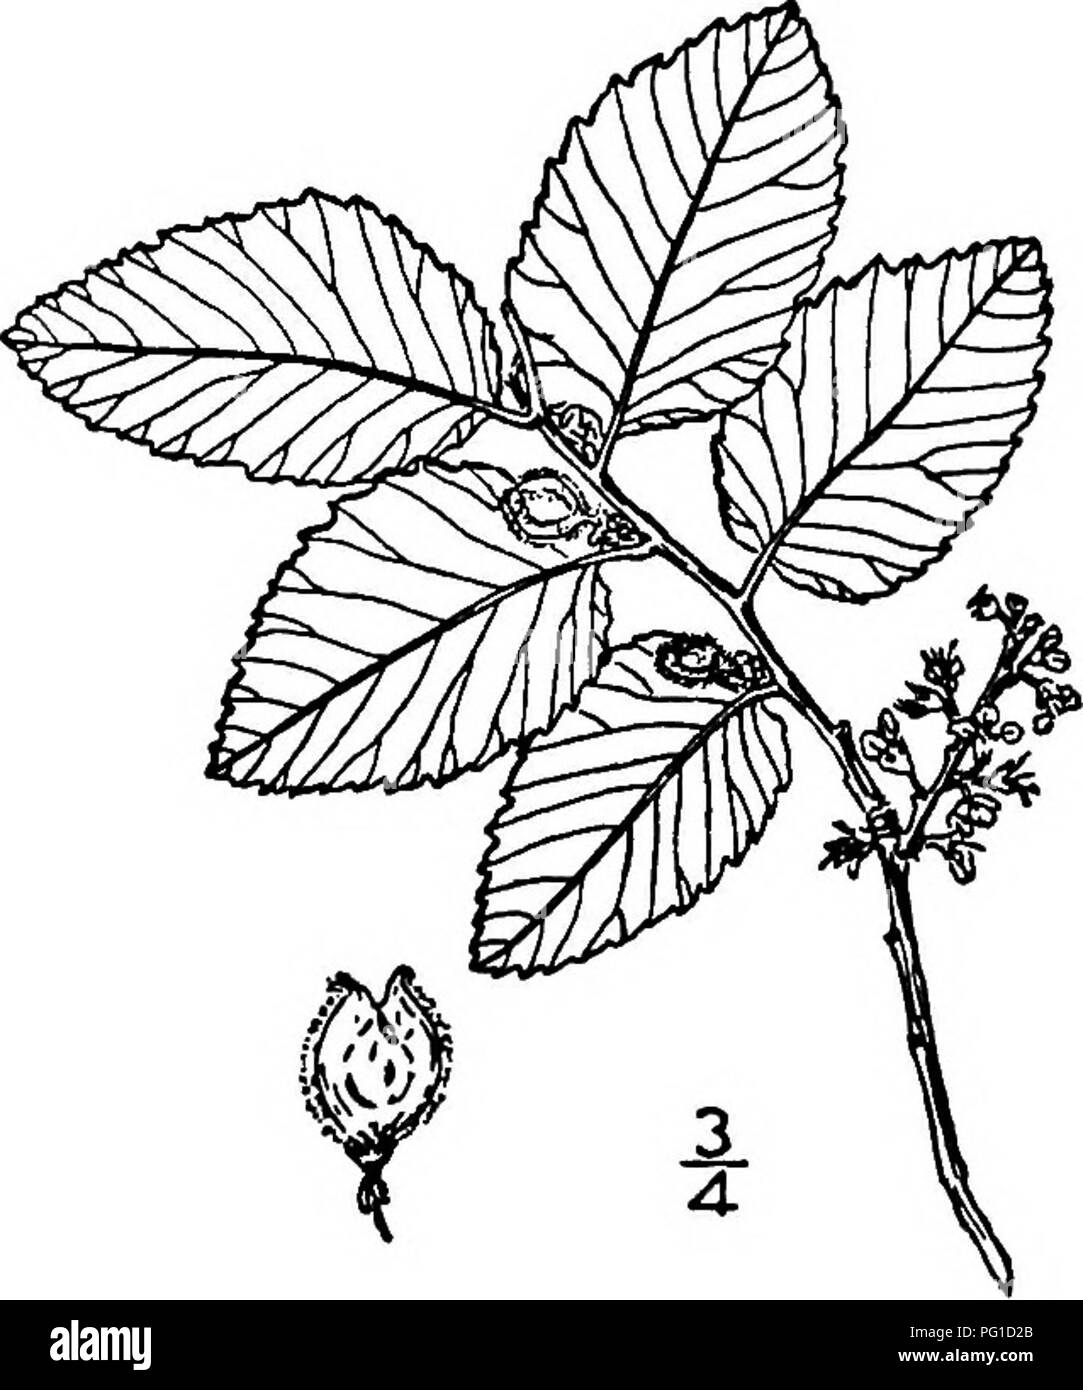 . North American trees : being descriptions and illustrations of the trees growing independently of cultivation in North America, north of Mexico and the West Indies . Trees. Cedar Elm 345 sided. The flowers are small, variously clustered, and almost always perfect, though sometimes polygamous, vernal in most of the species and then appearing before the leaves, autunmal in a few species and then appearing in the axils of leaves of the season. The usually bell-shaped calyx is from 4-lobed to 9-lobed, the lobes sometimes extending nearly to its base; it remains permanently attached to the fruit; - Stock Image